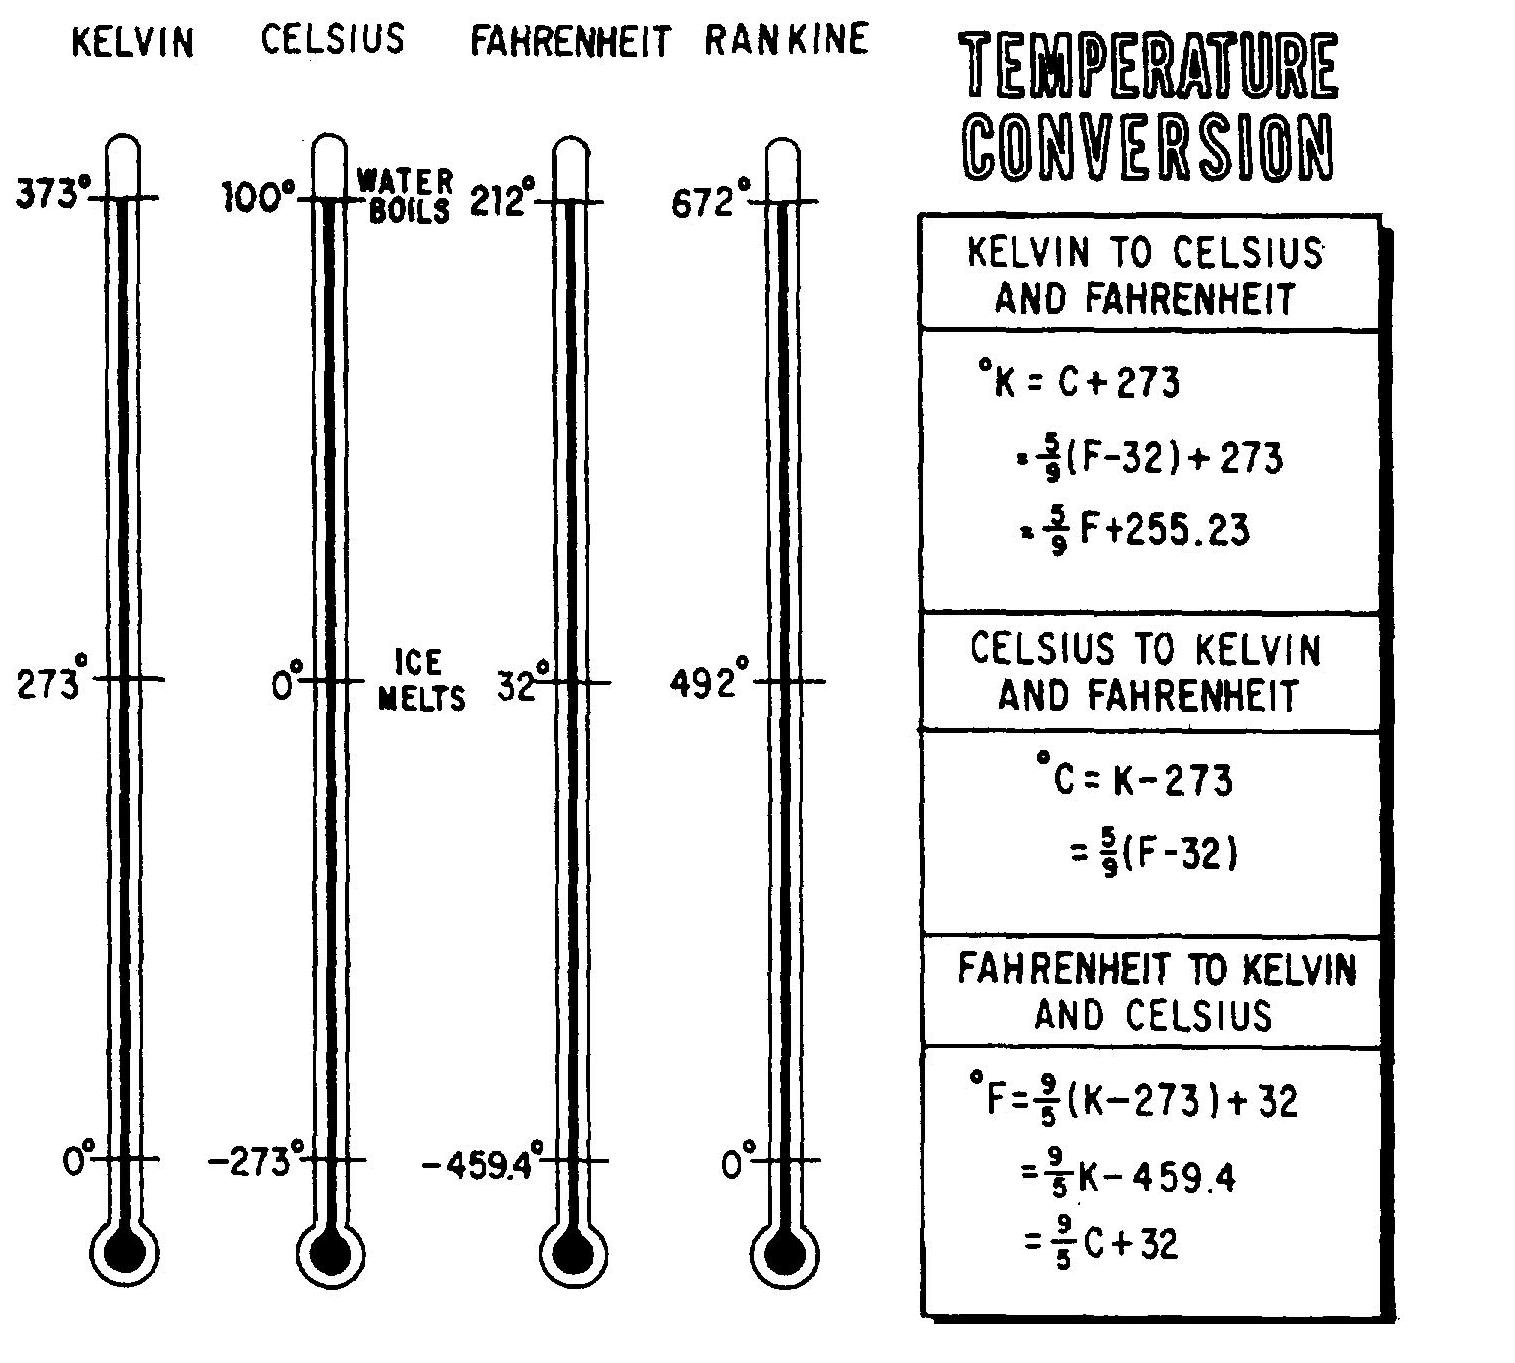 Searchitfast image temperature conversion chart 1515x1363 view full size nvjuhfo Images